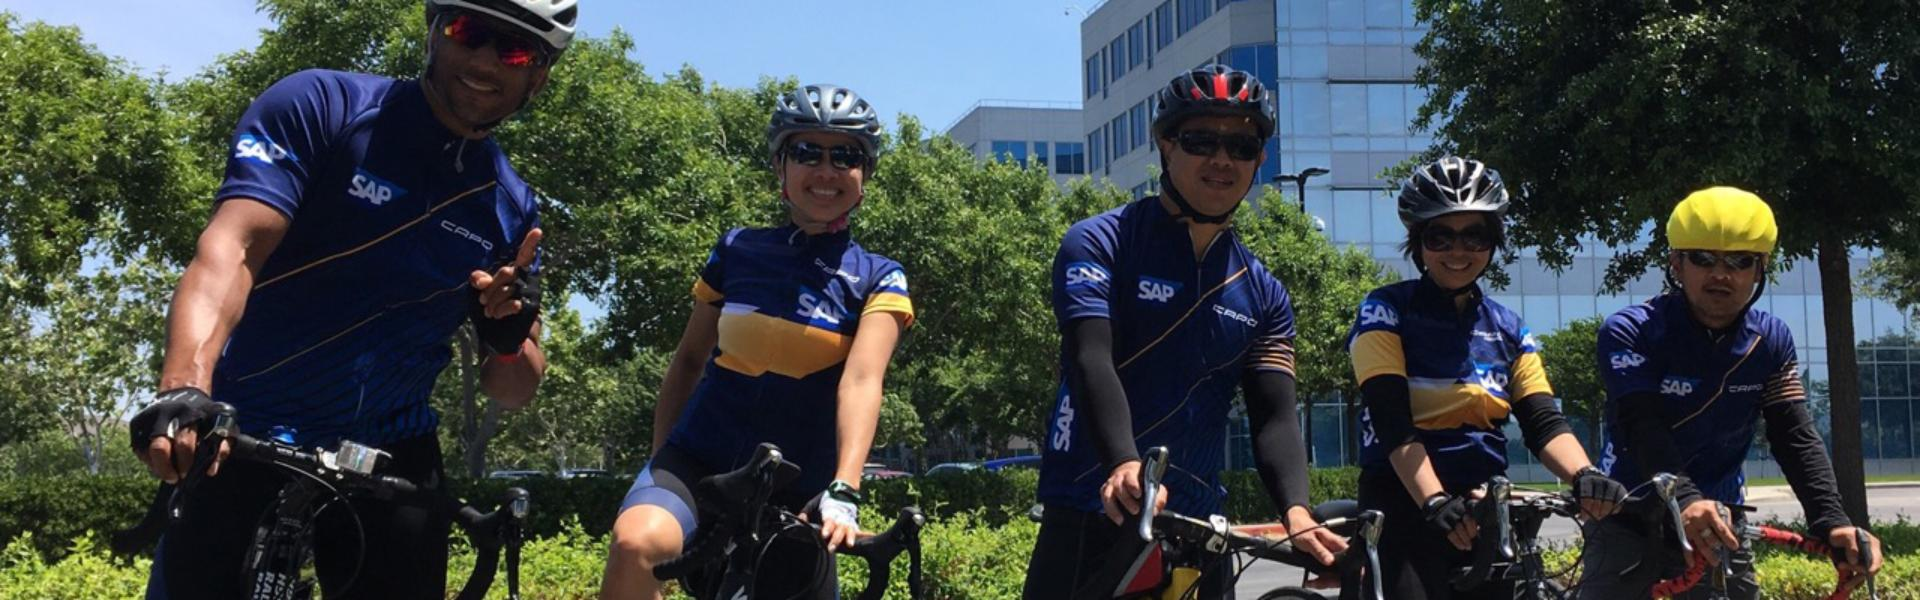 SAP employees on bikes